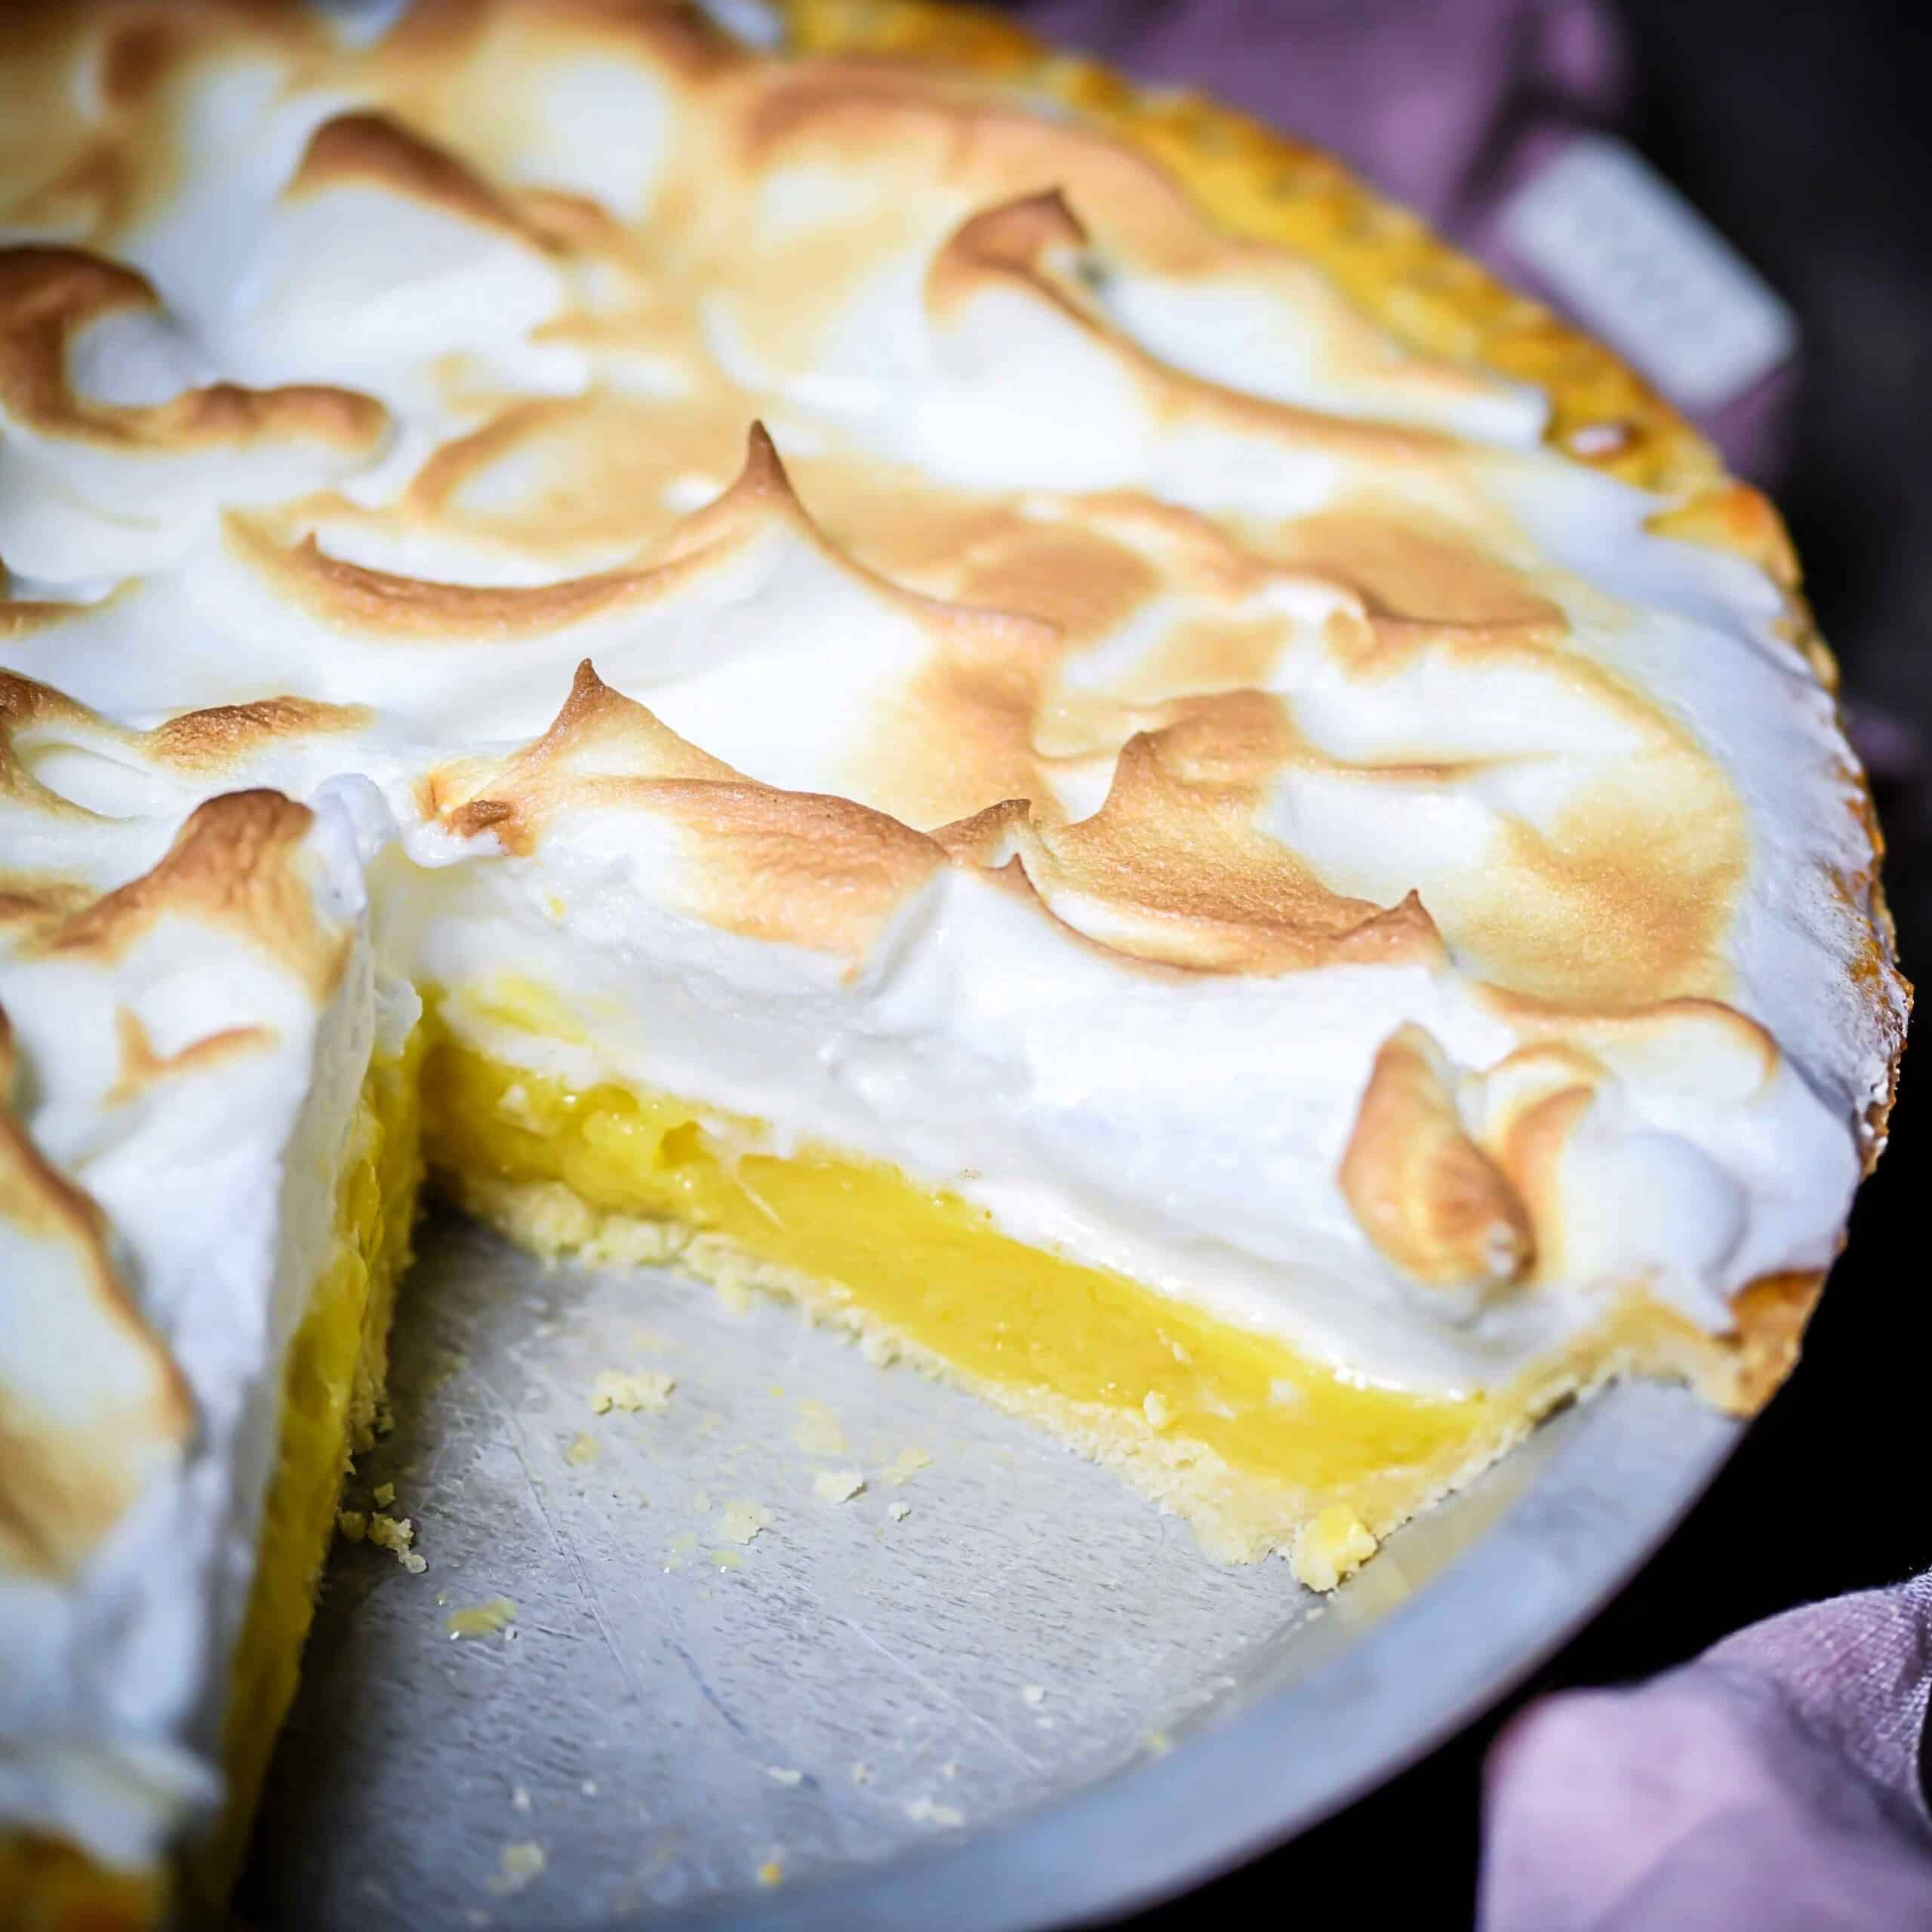 Lemon Meringue Pie gluten-free